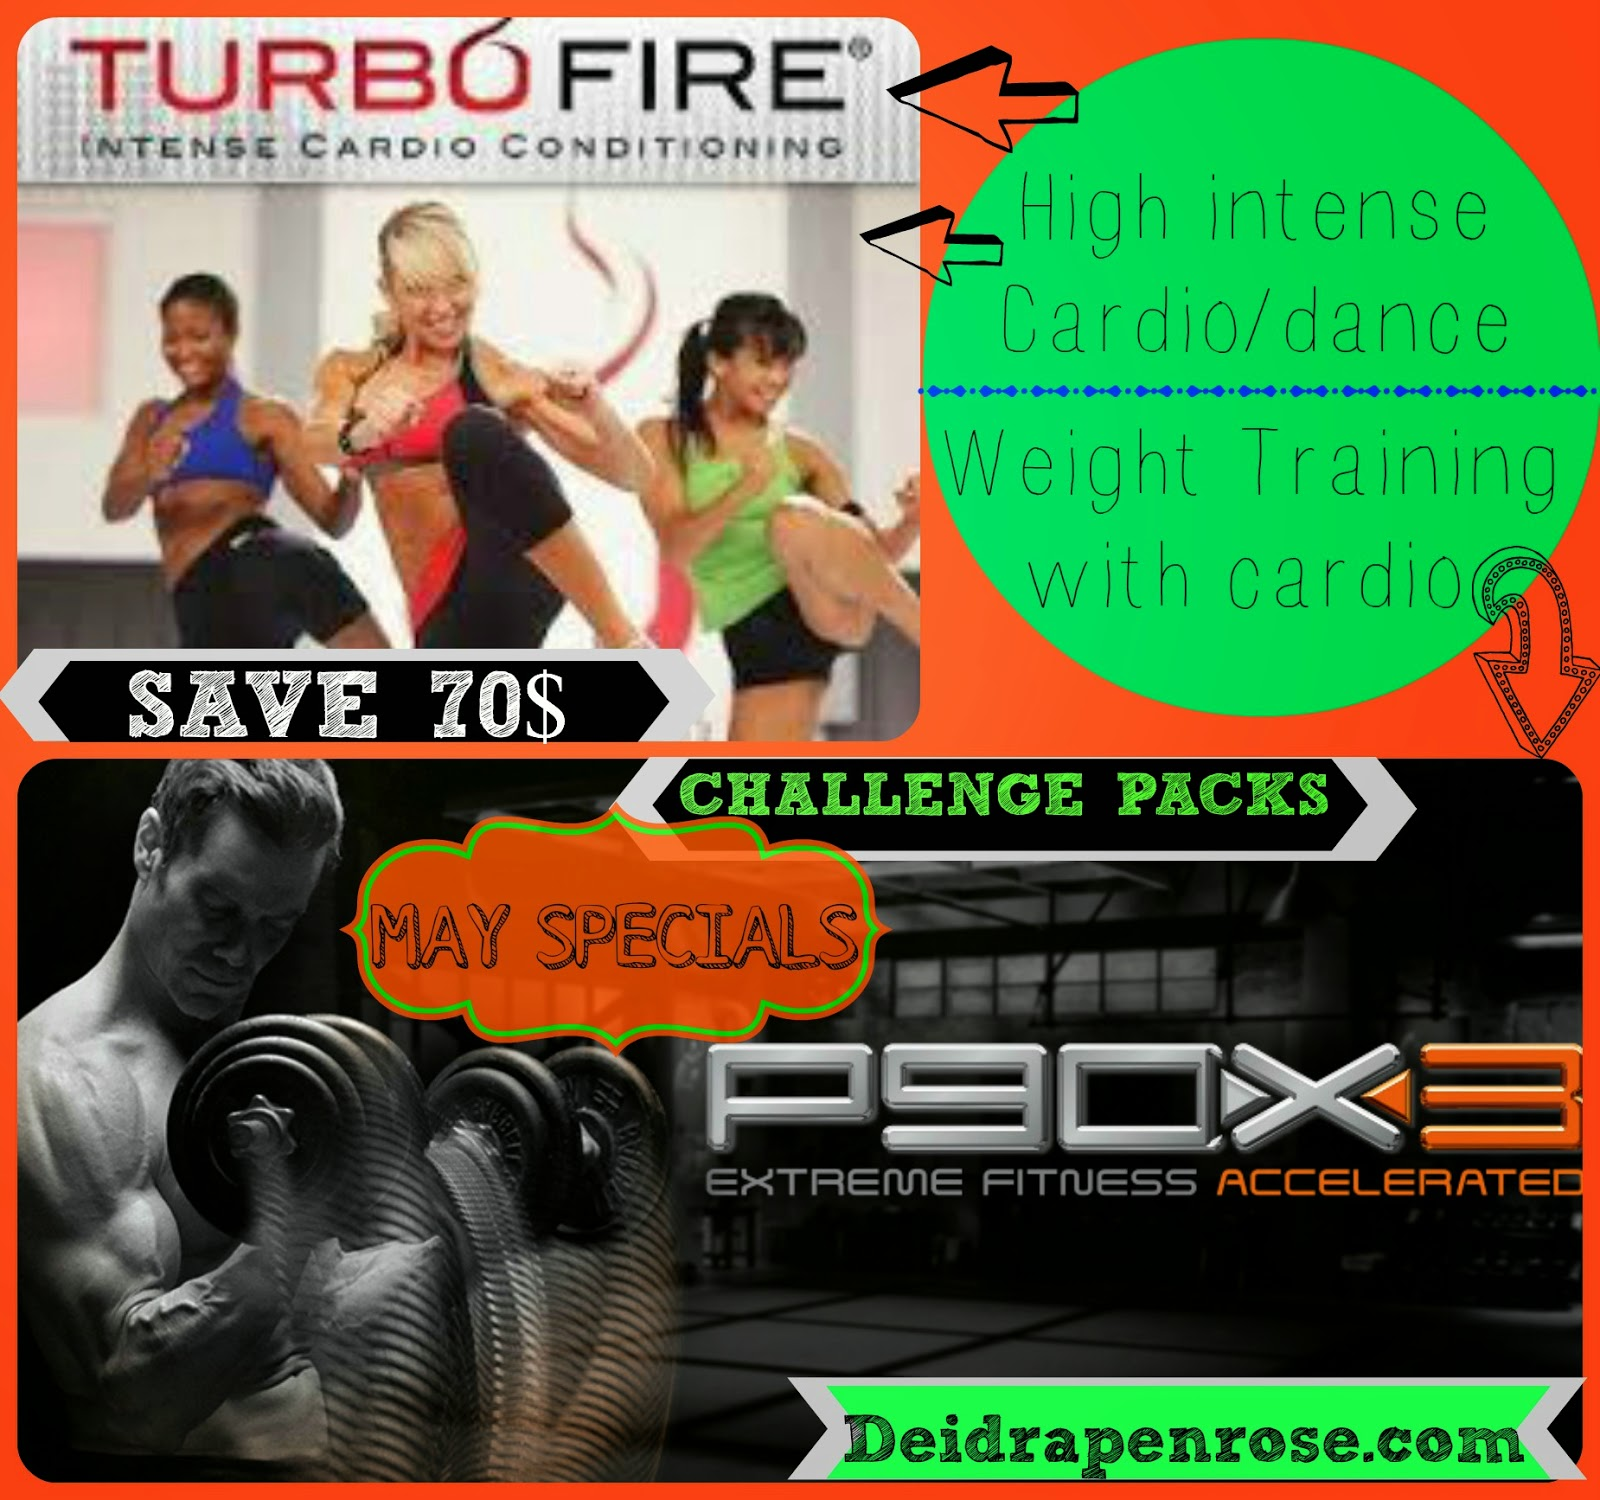 Deidra Penrose, high impact workouts, turbo fire sale, p90X3 sale, weight loss programs, team beach body workouts, dancing workouts, weight training home programs, fitness motivation, lose weight for summer, healthy diets, shakeology, beach body challenge pack sales, home DVD program, meal plans